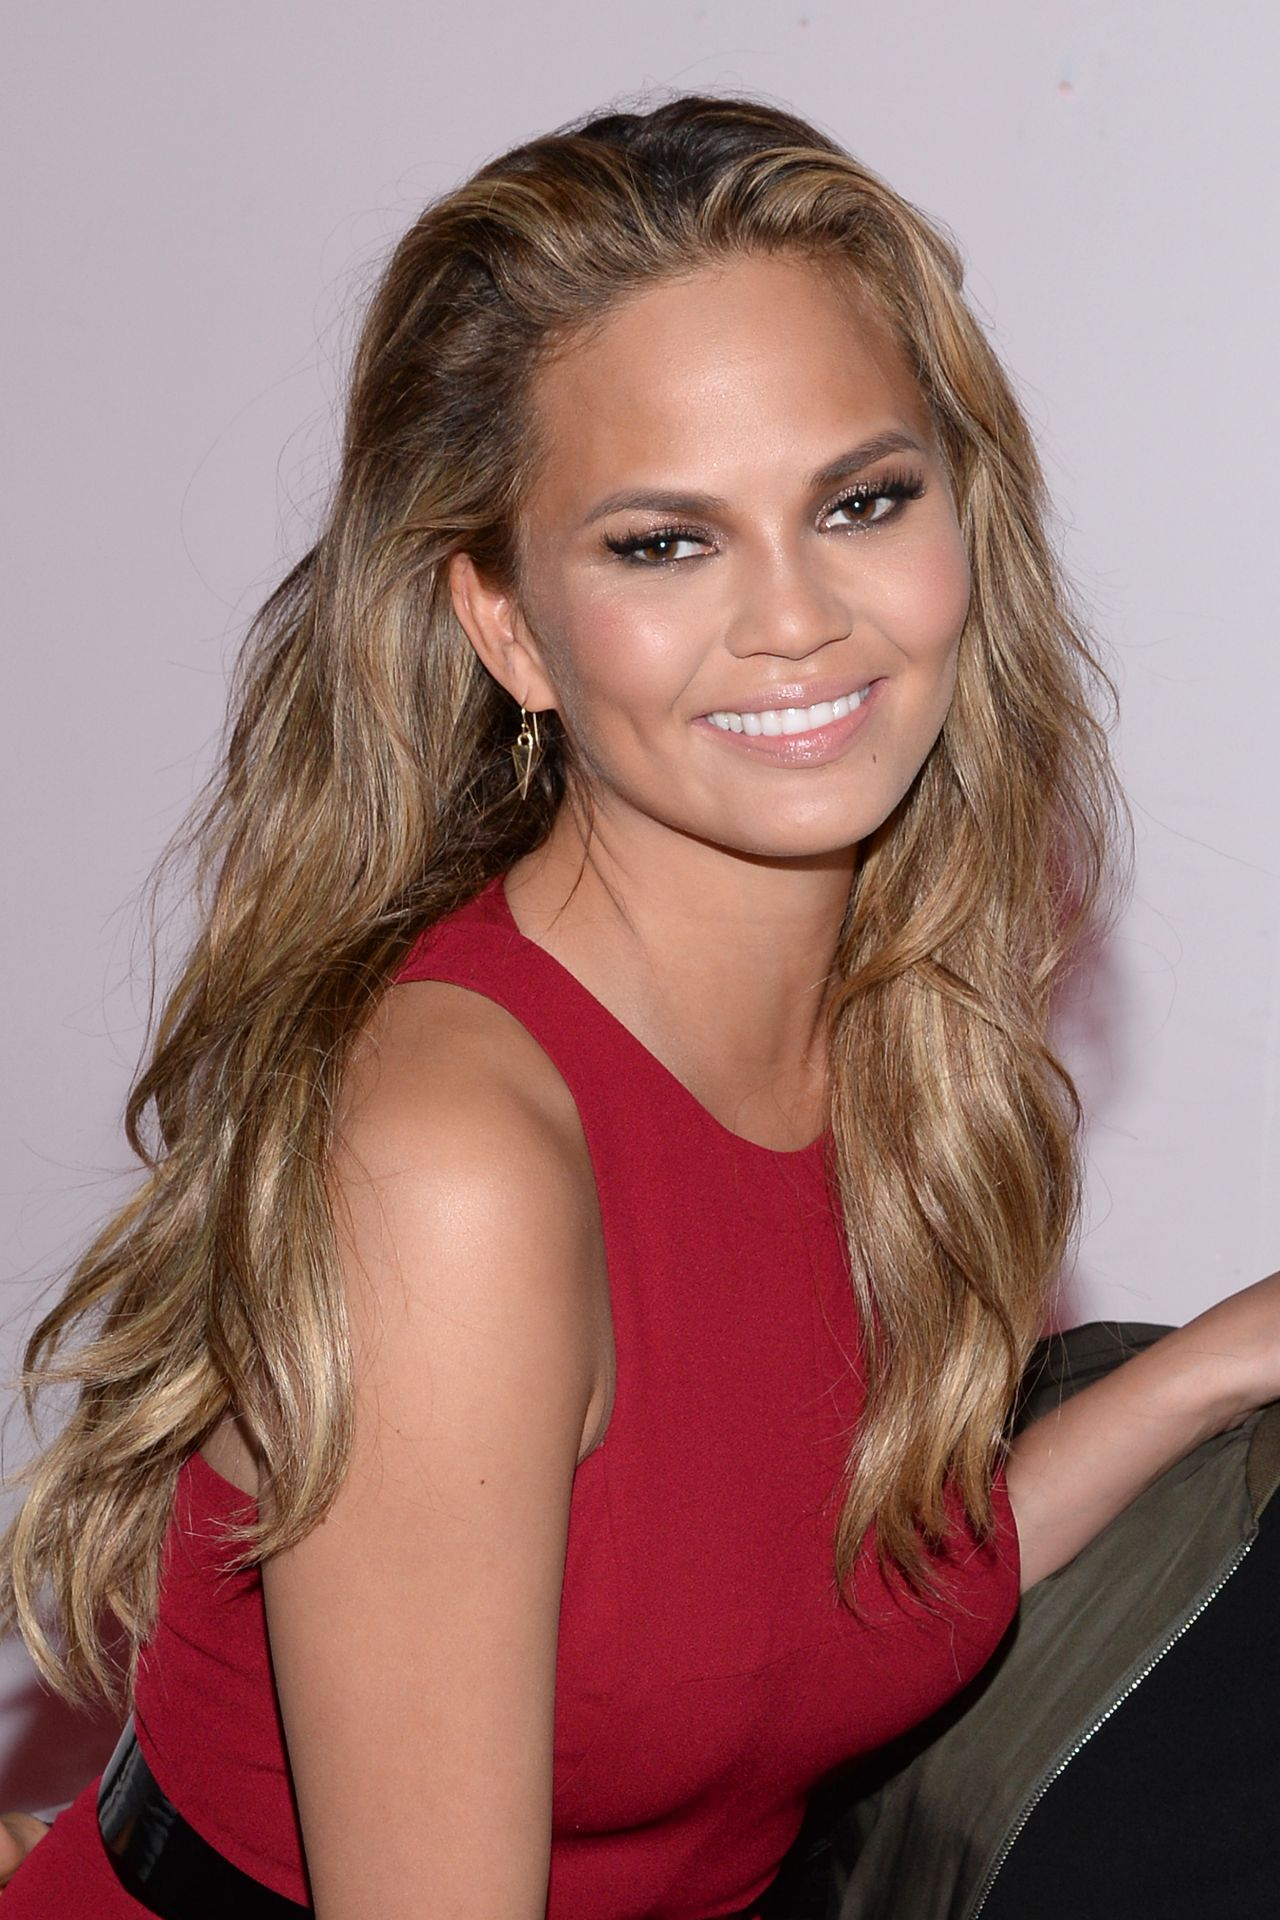 Chrissy Teigen – 2015 Leather & Laces Super Bowl XLIX Party in Phoenix